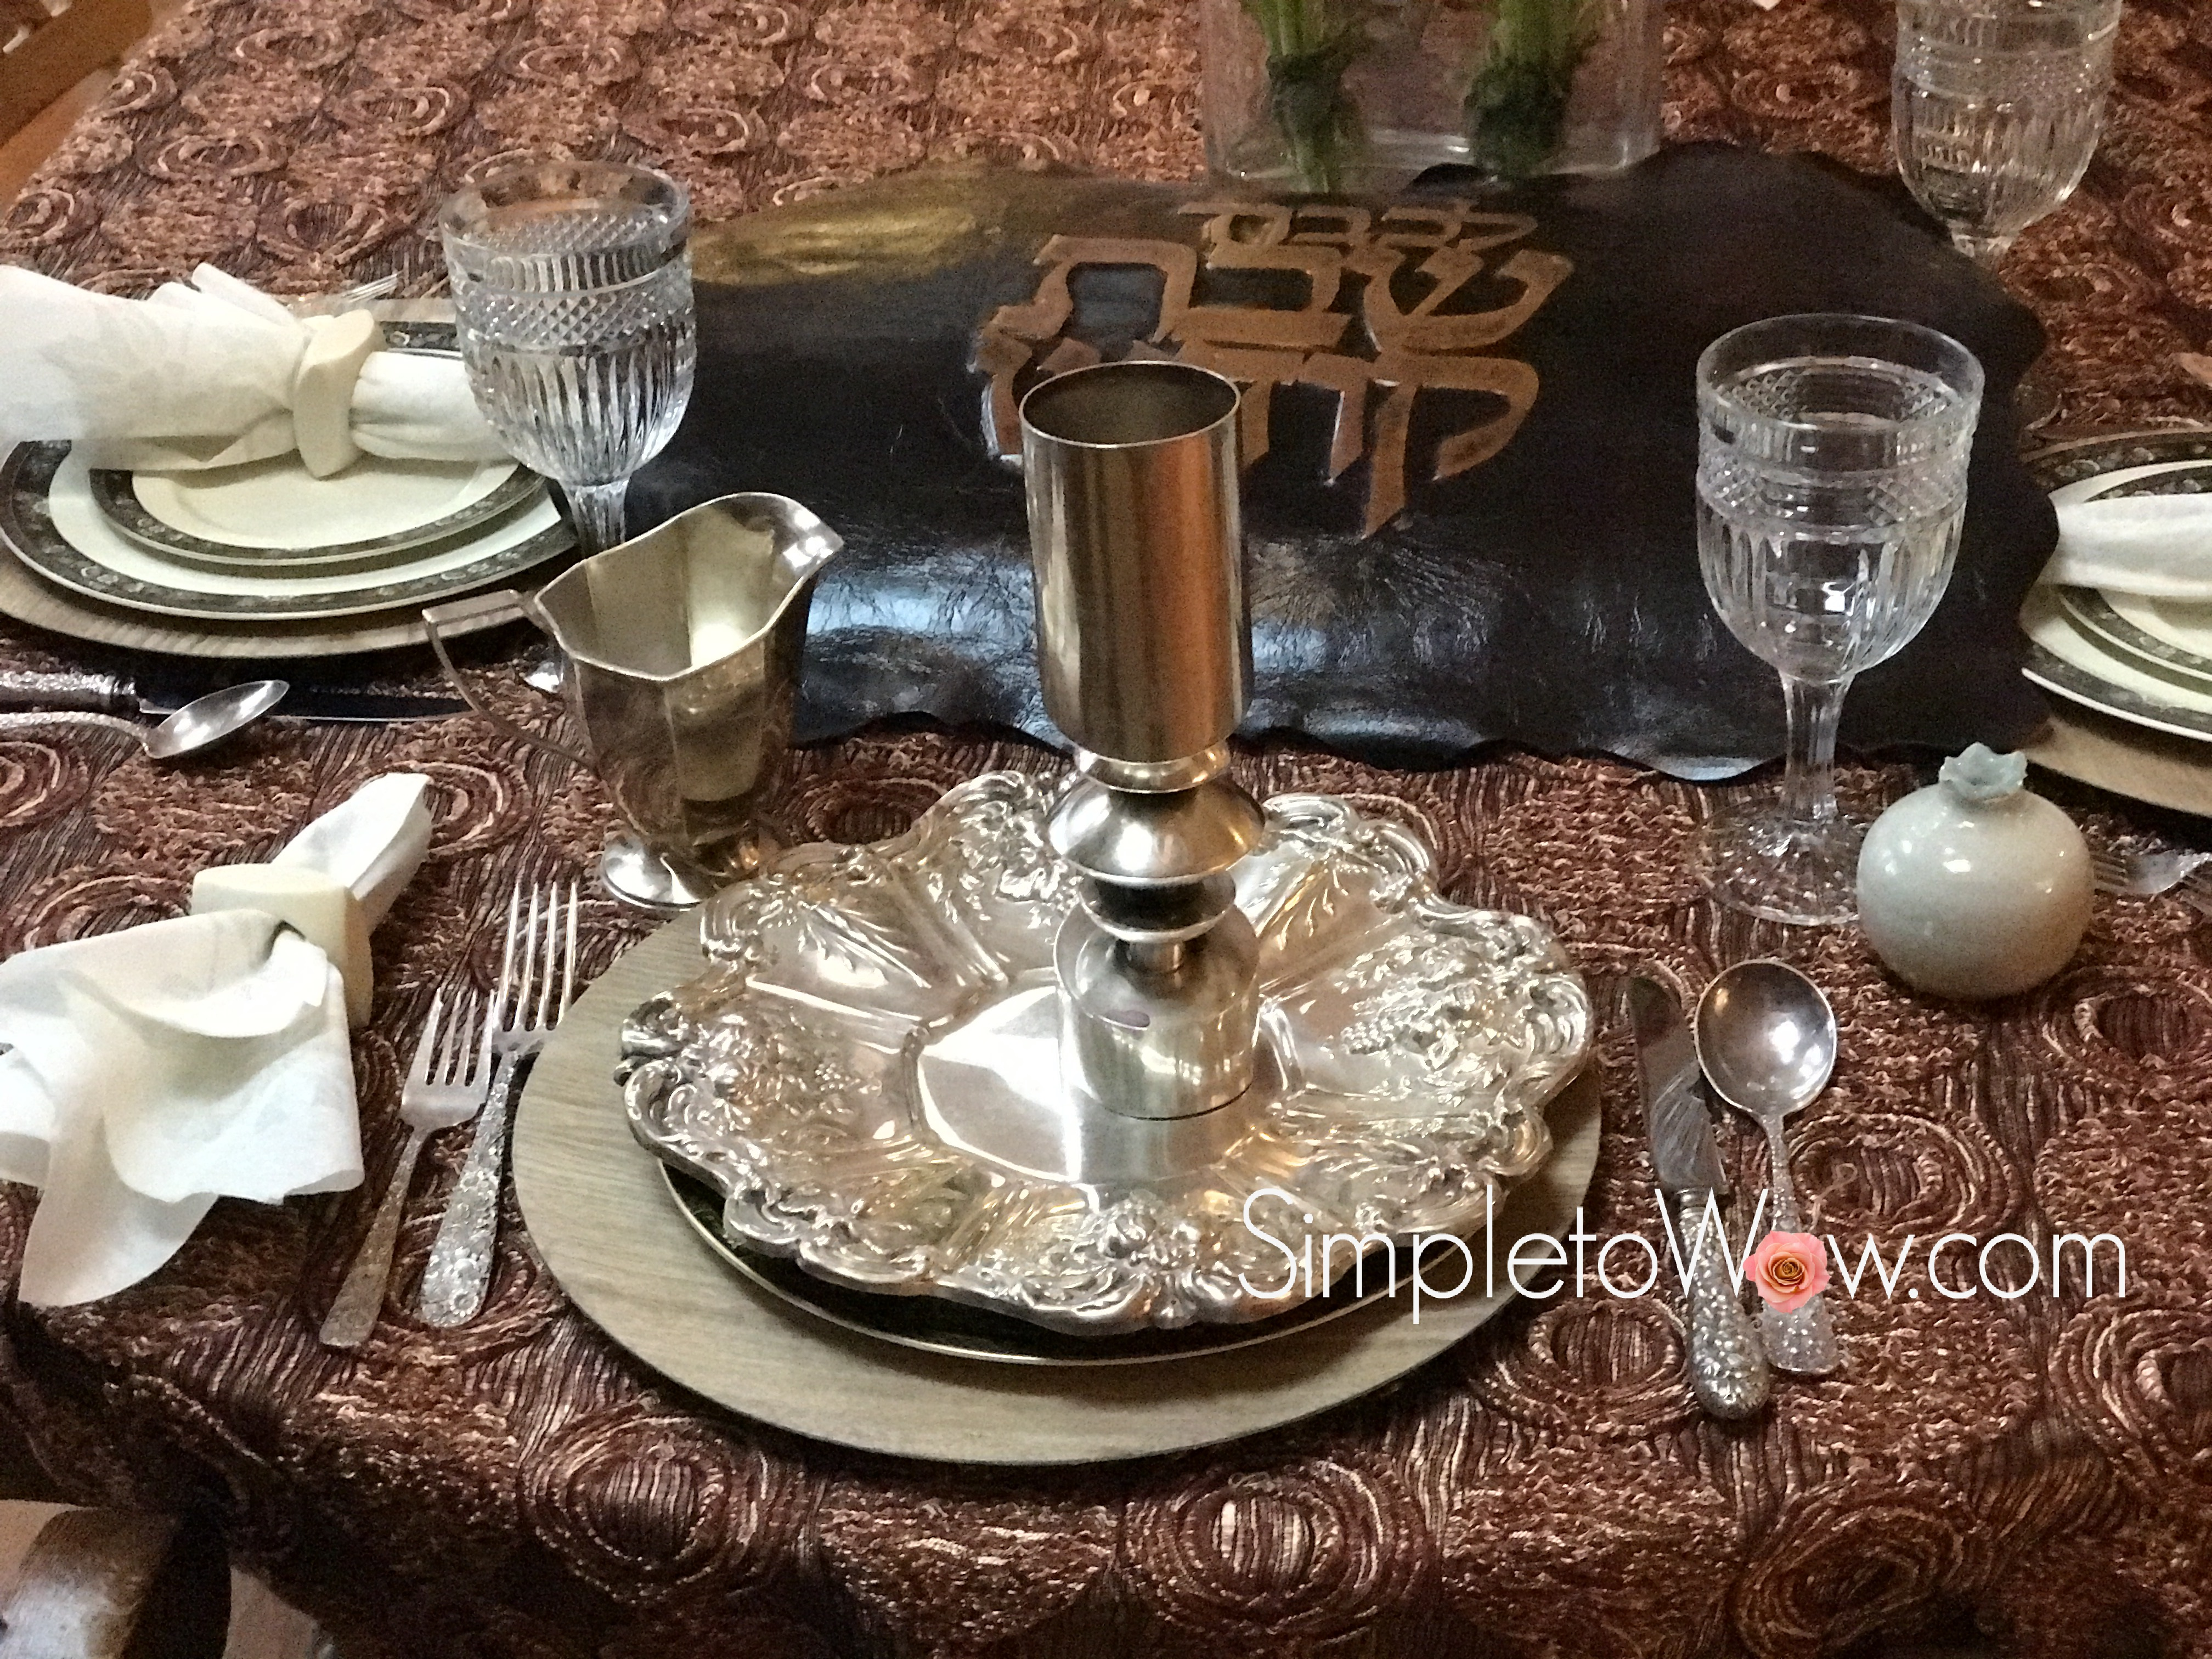 Our Shabbos Table & Table Settings   simple to wow